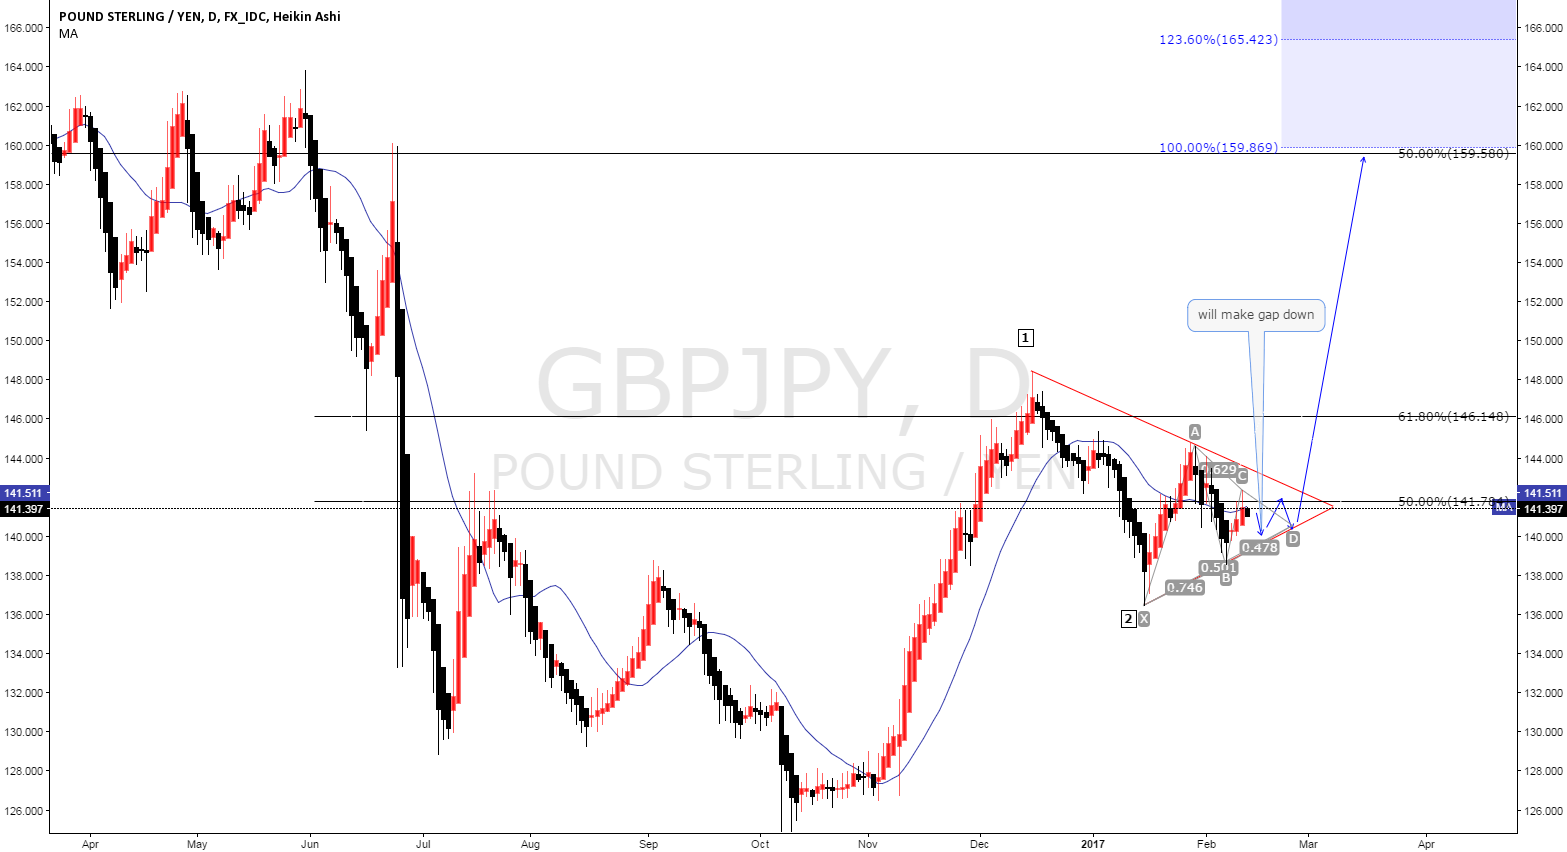 GBPJPY will open gap down and go to hair